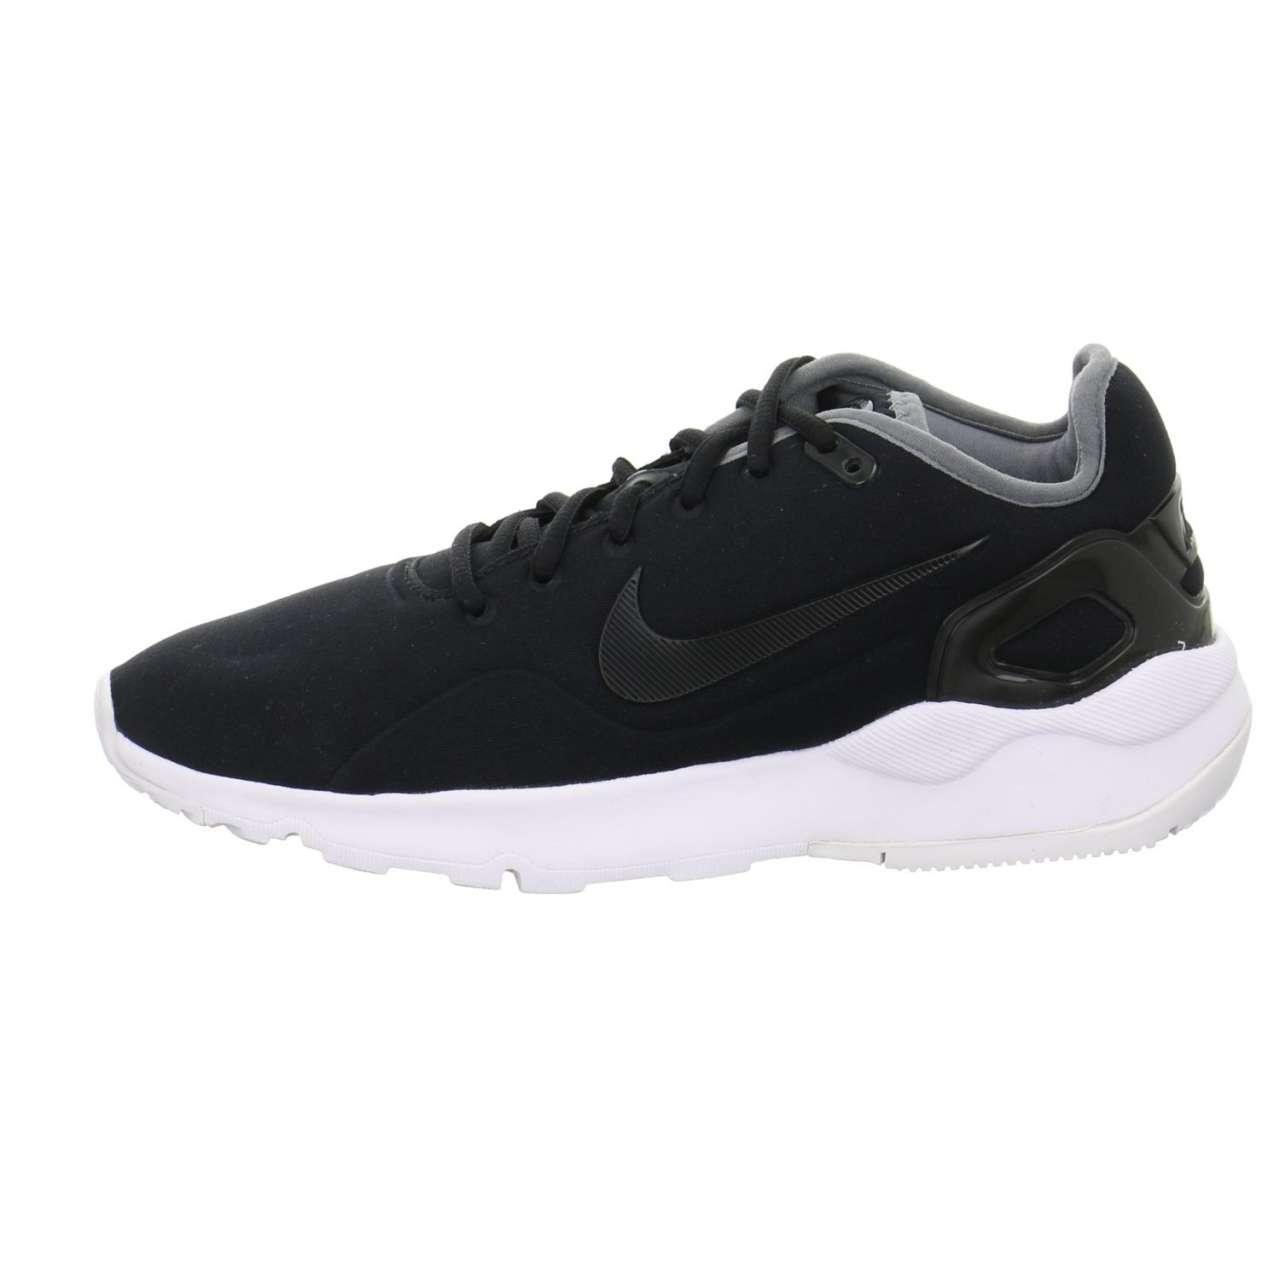 9388ced45500a8 Nike Wo Trainers Black Ld Runner Lw in Black - Save 55% - Lyst